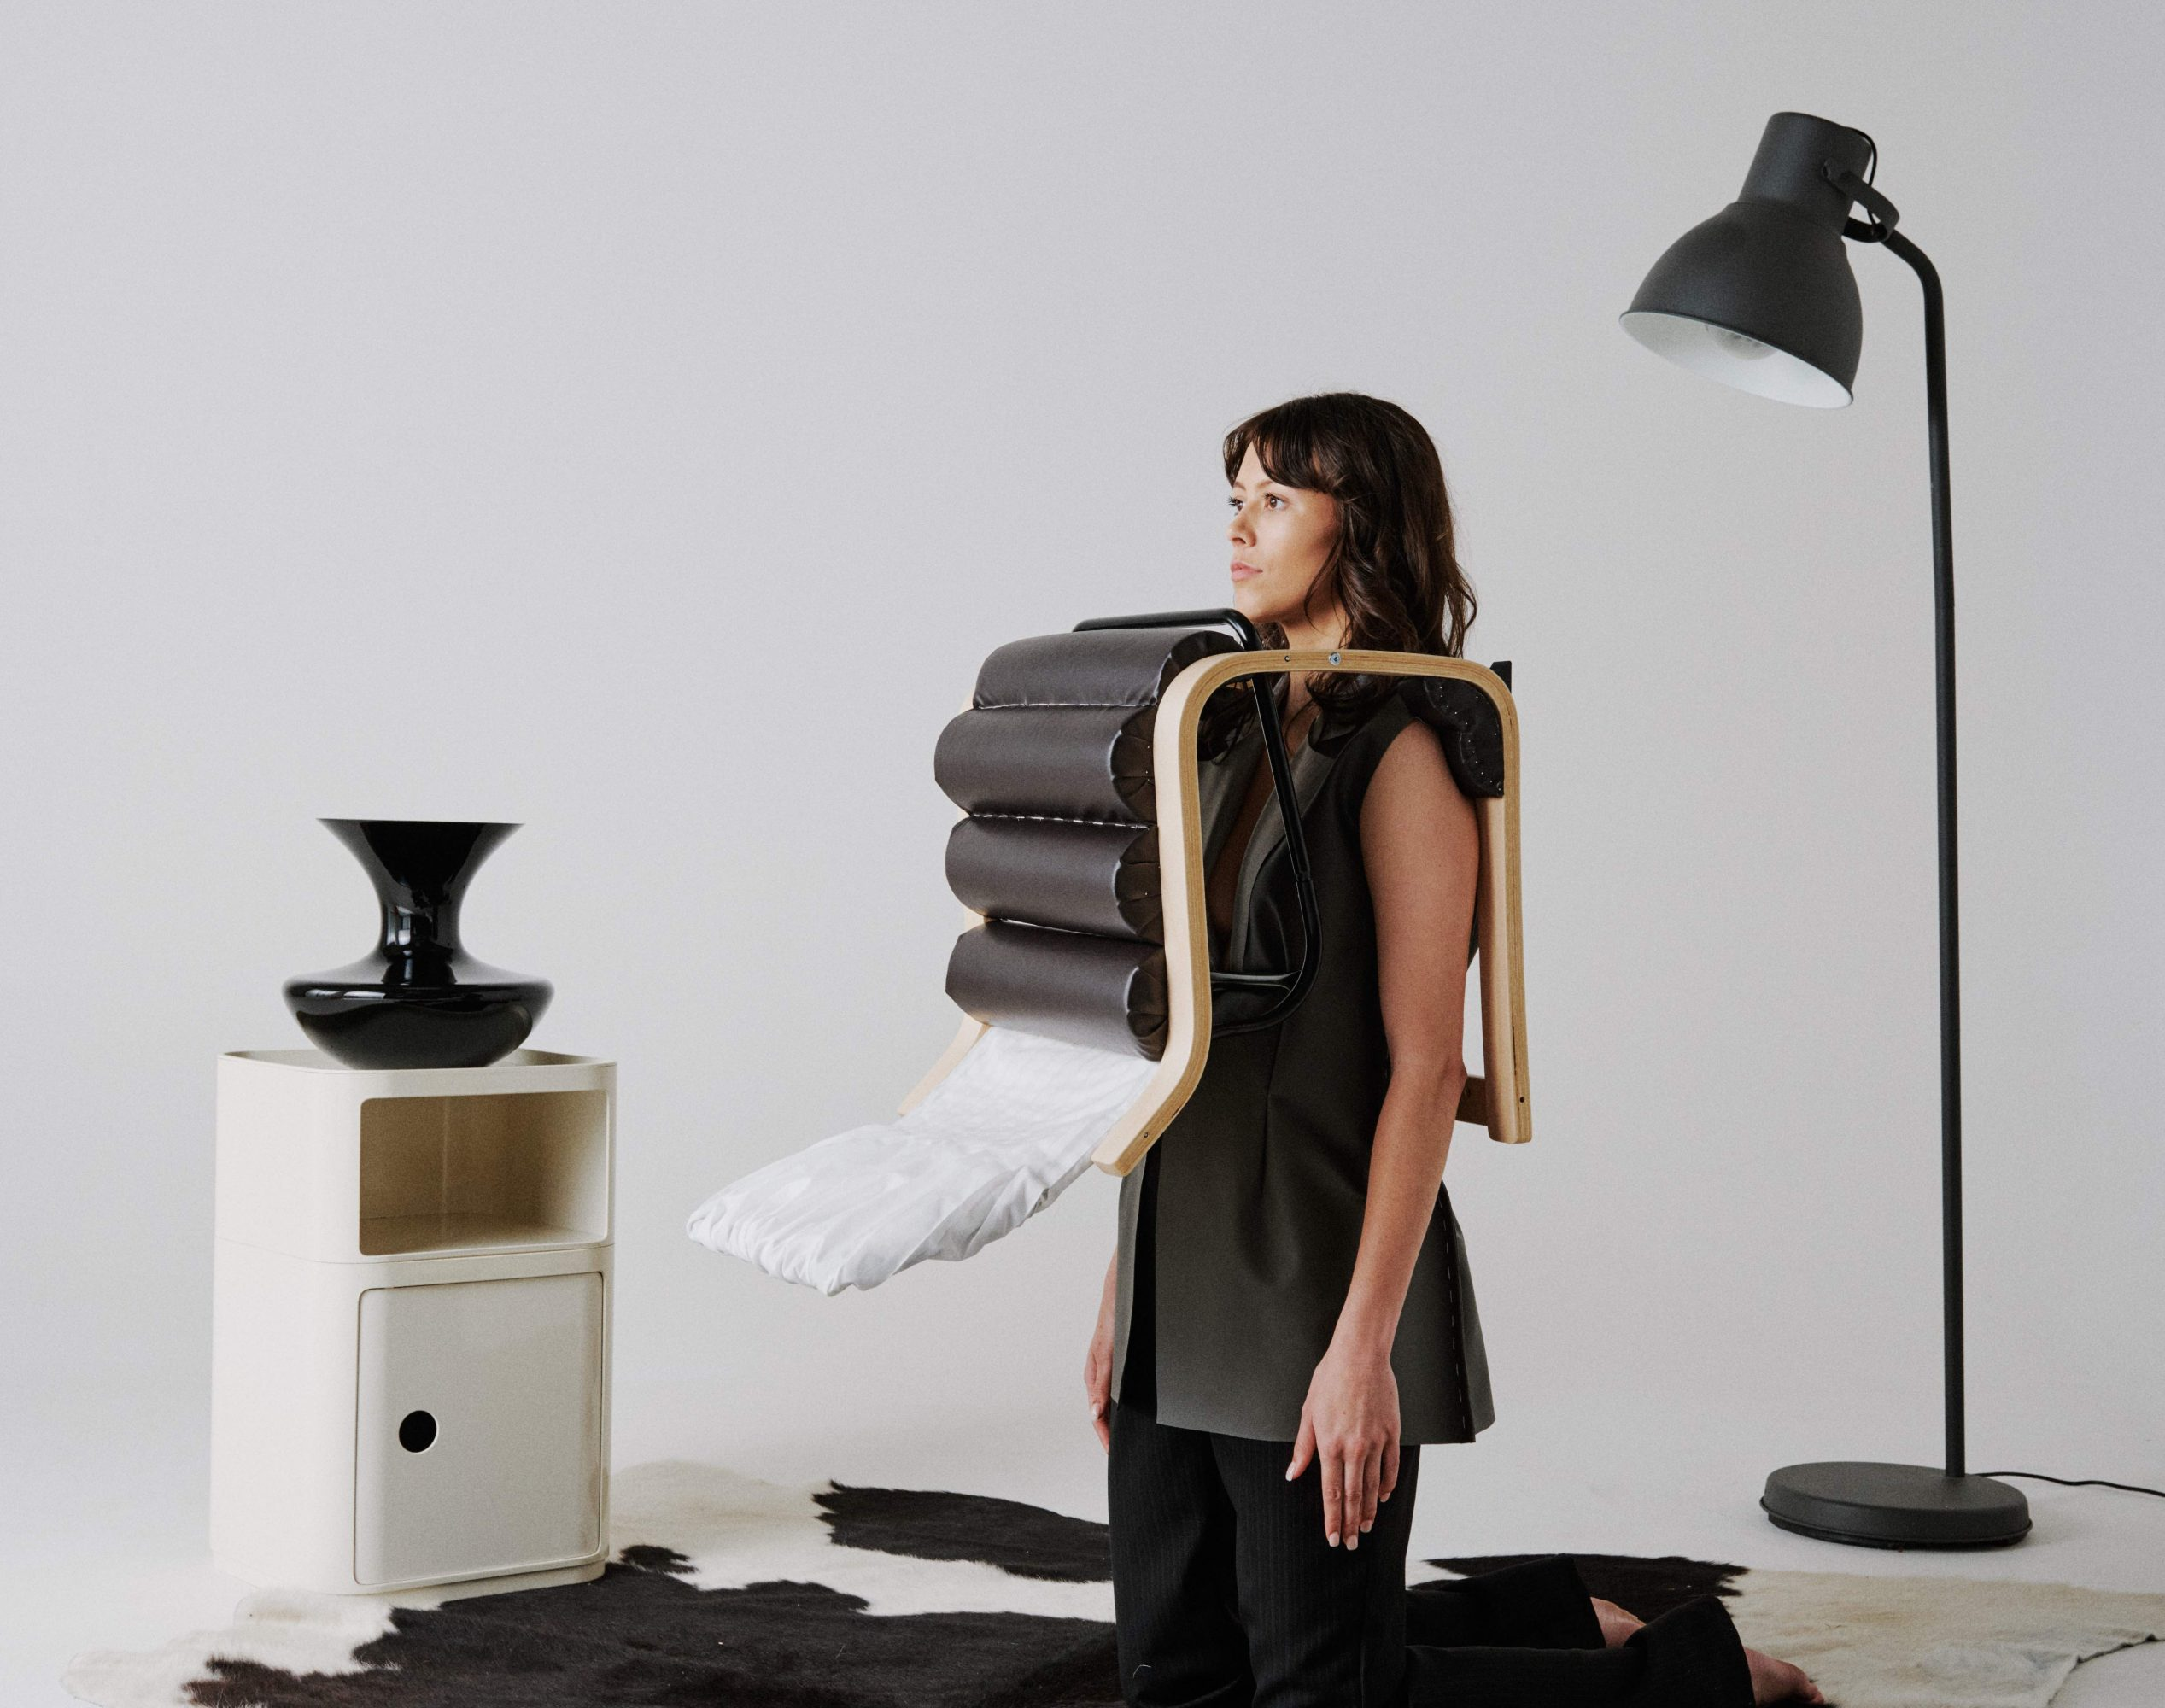 'Transat' chair with pleated backrest, shoulder rests and detachable vest - a look from Vanessa Tan's graduate collection 'Take a Seat'.